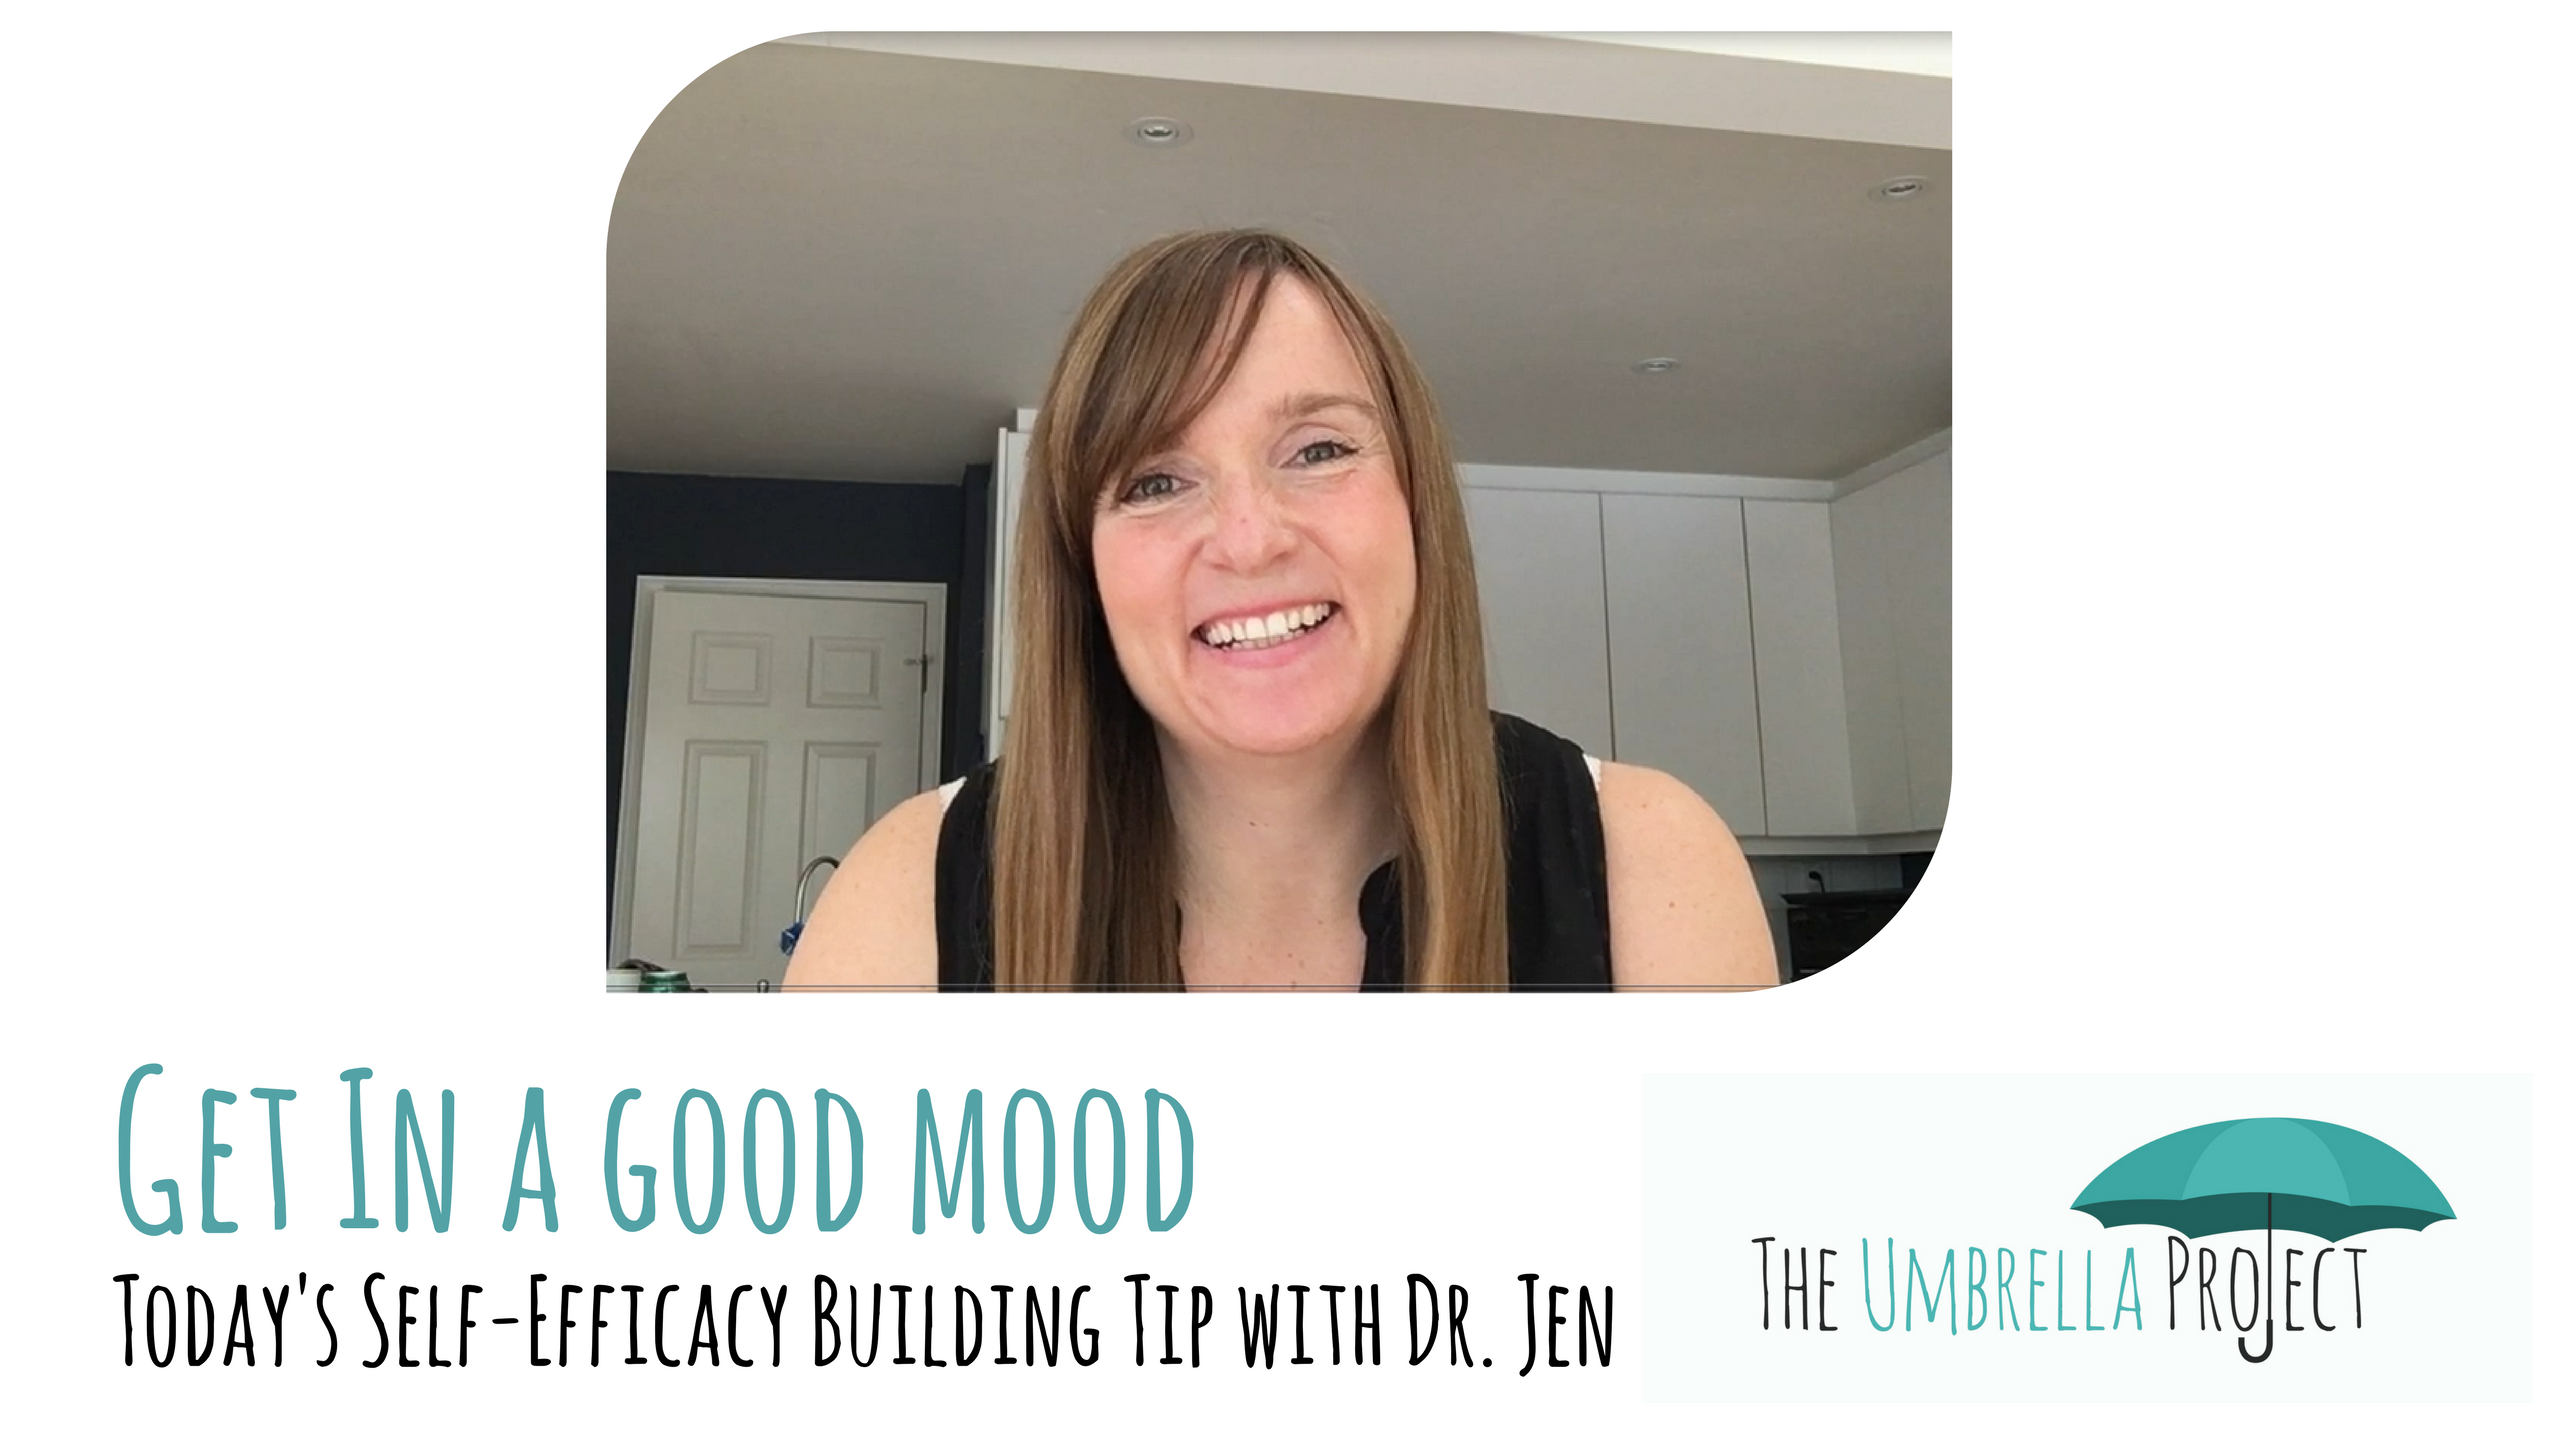 Get in a Good Mood: Today's Self-Efficacy Building Tip with Dr. Jen